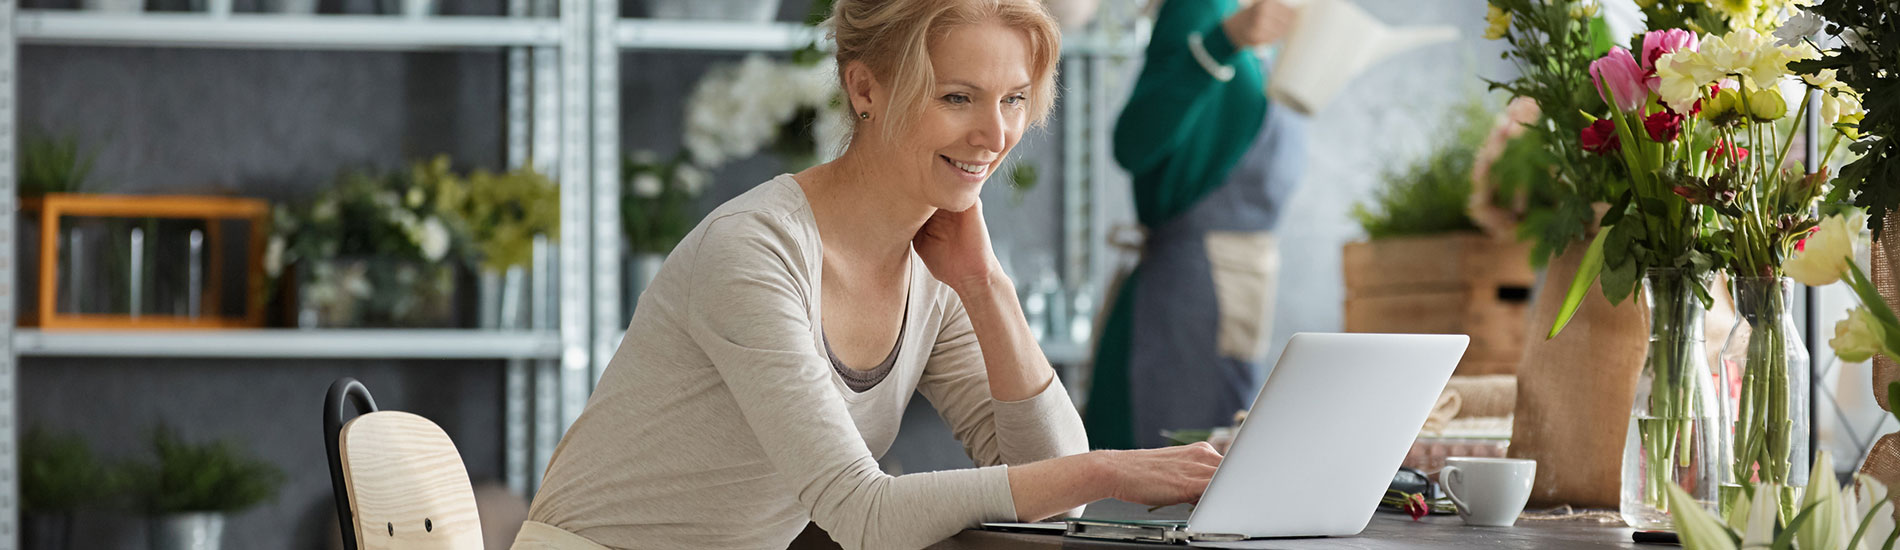 woman sitting at desk looking at laptop screen